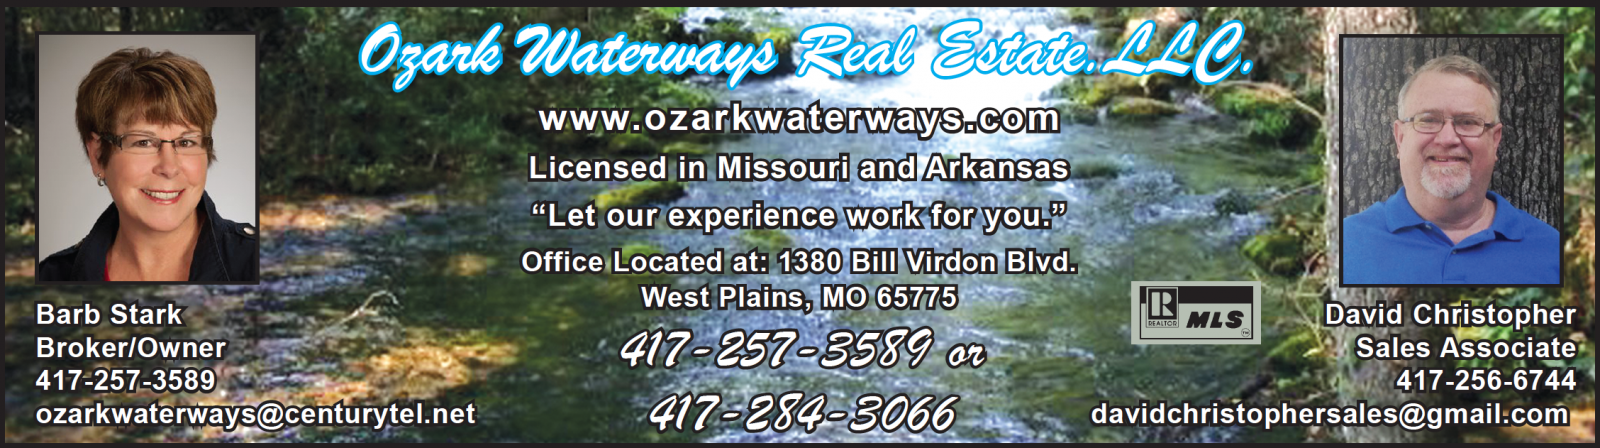 Ozark Waterways Real Estate, LLC � Barb Stark, Broker/Owner � West Plains, MO Real Estate